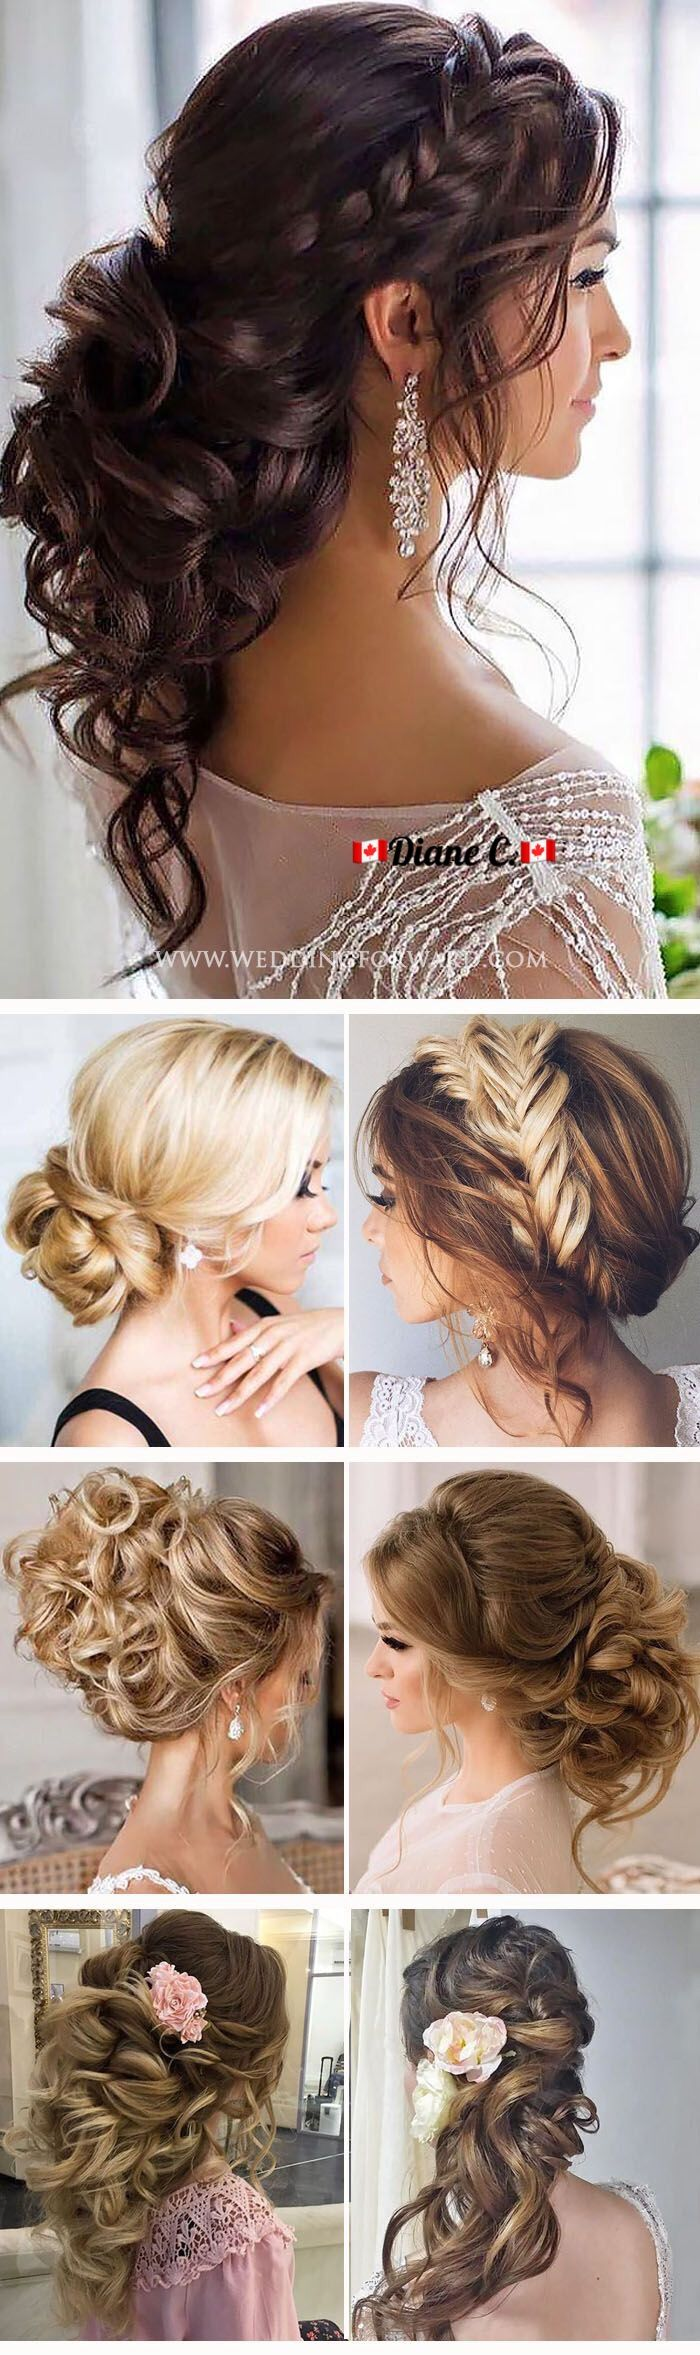 Trendy Bridal up-dos